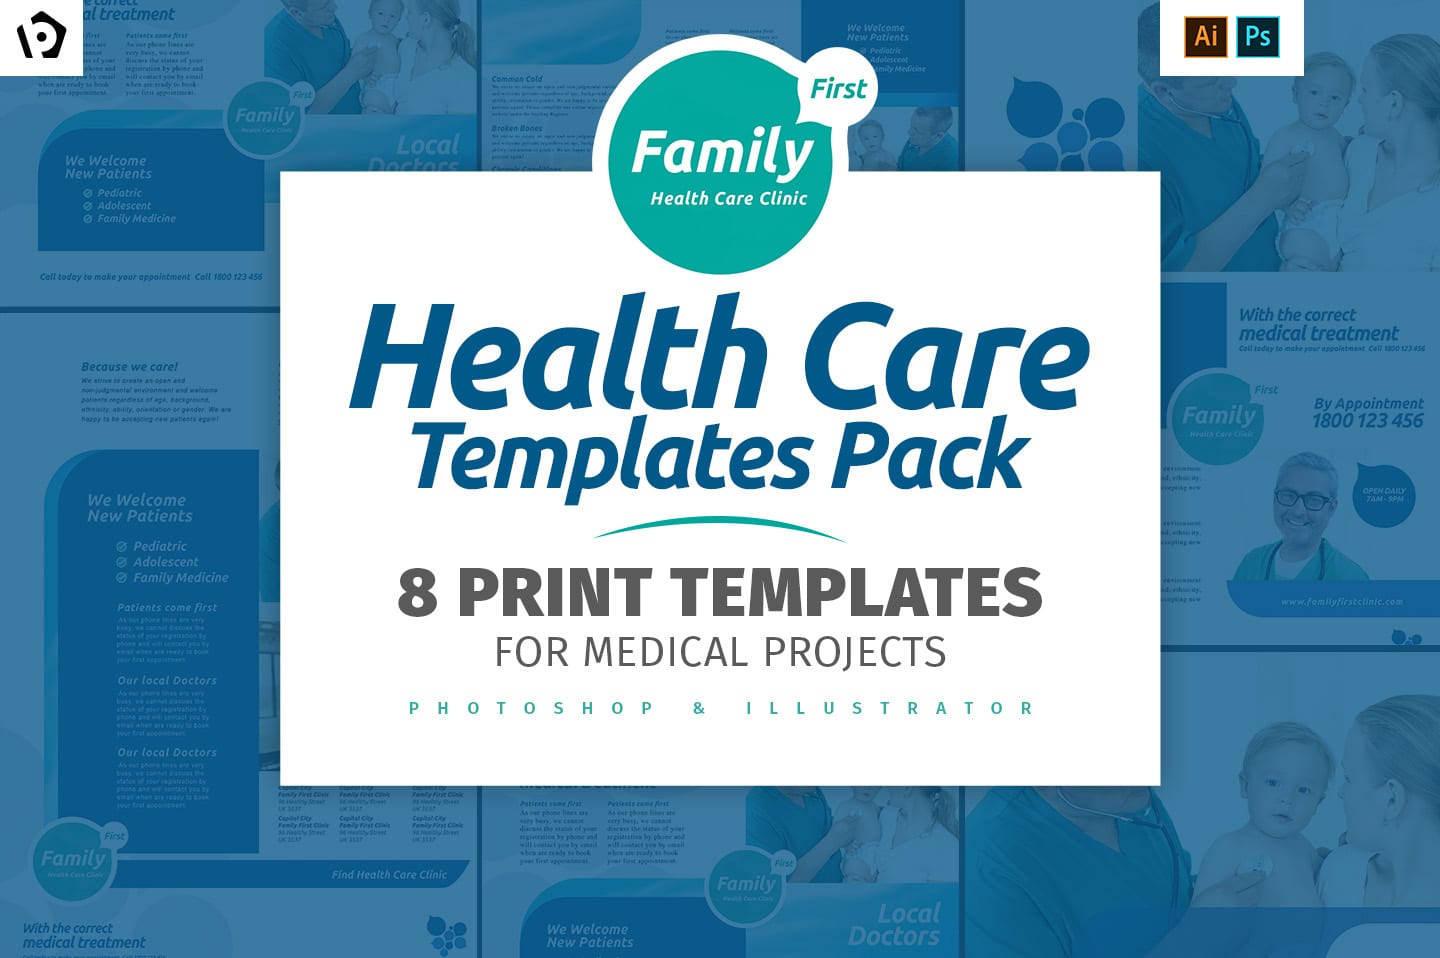 Health Care Templates Pack